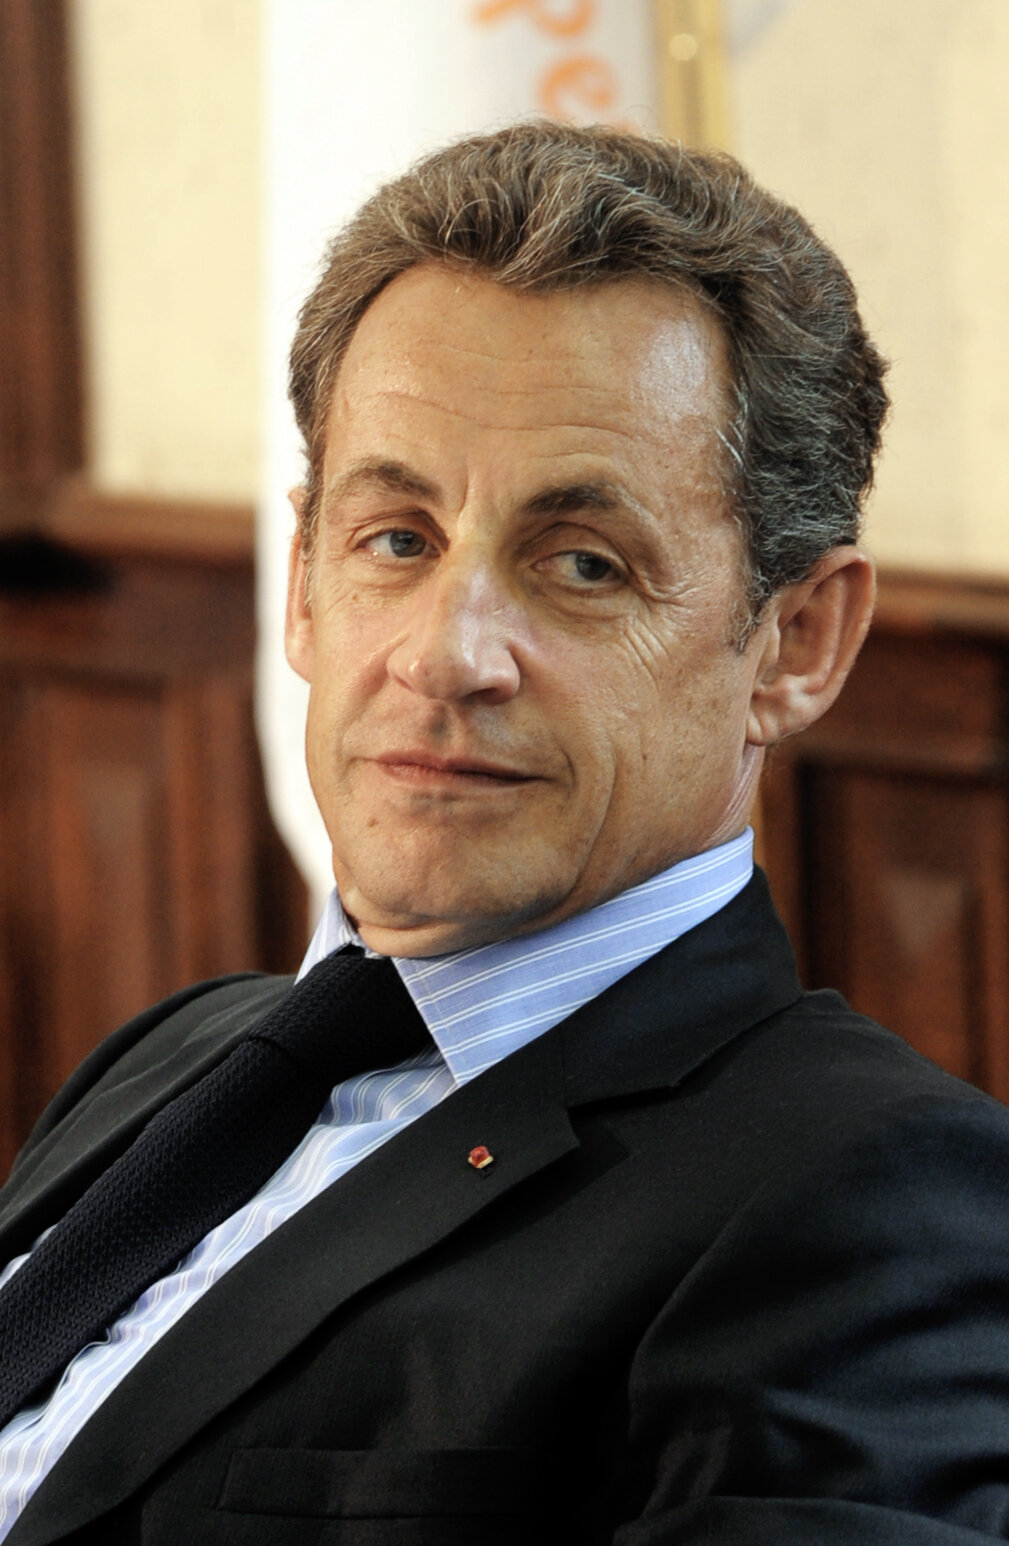 Nicolas Sarkozy  By European People's Party - EPP Summit October 2010, CC BY 2.0, https://commons.wikimedia.org/w/index.php?curid=12162667